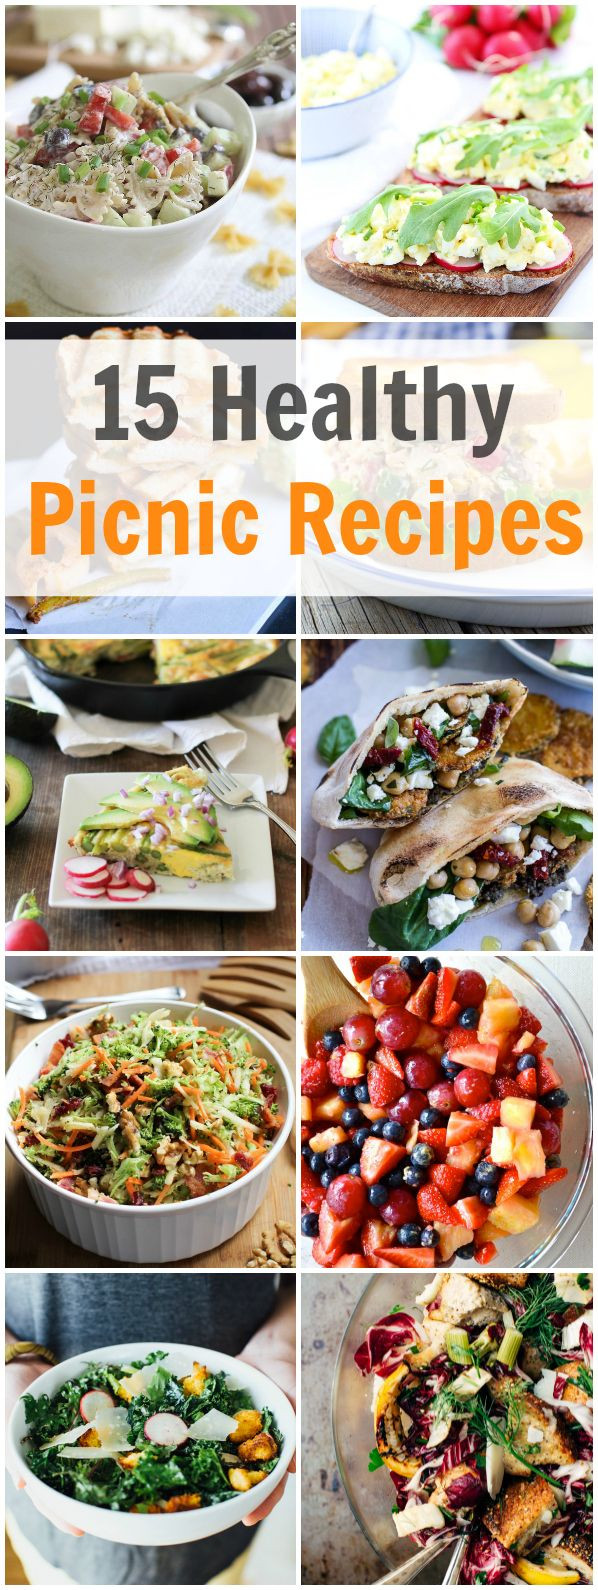 Summer Snacks Recipes  Best 25 Healthy Picnic Recipes ideas on Pinterest